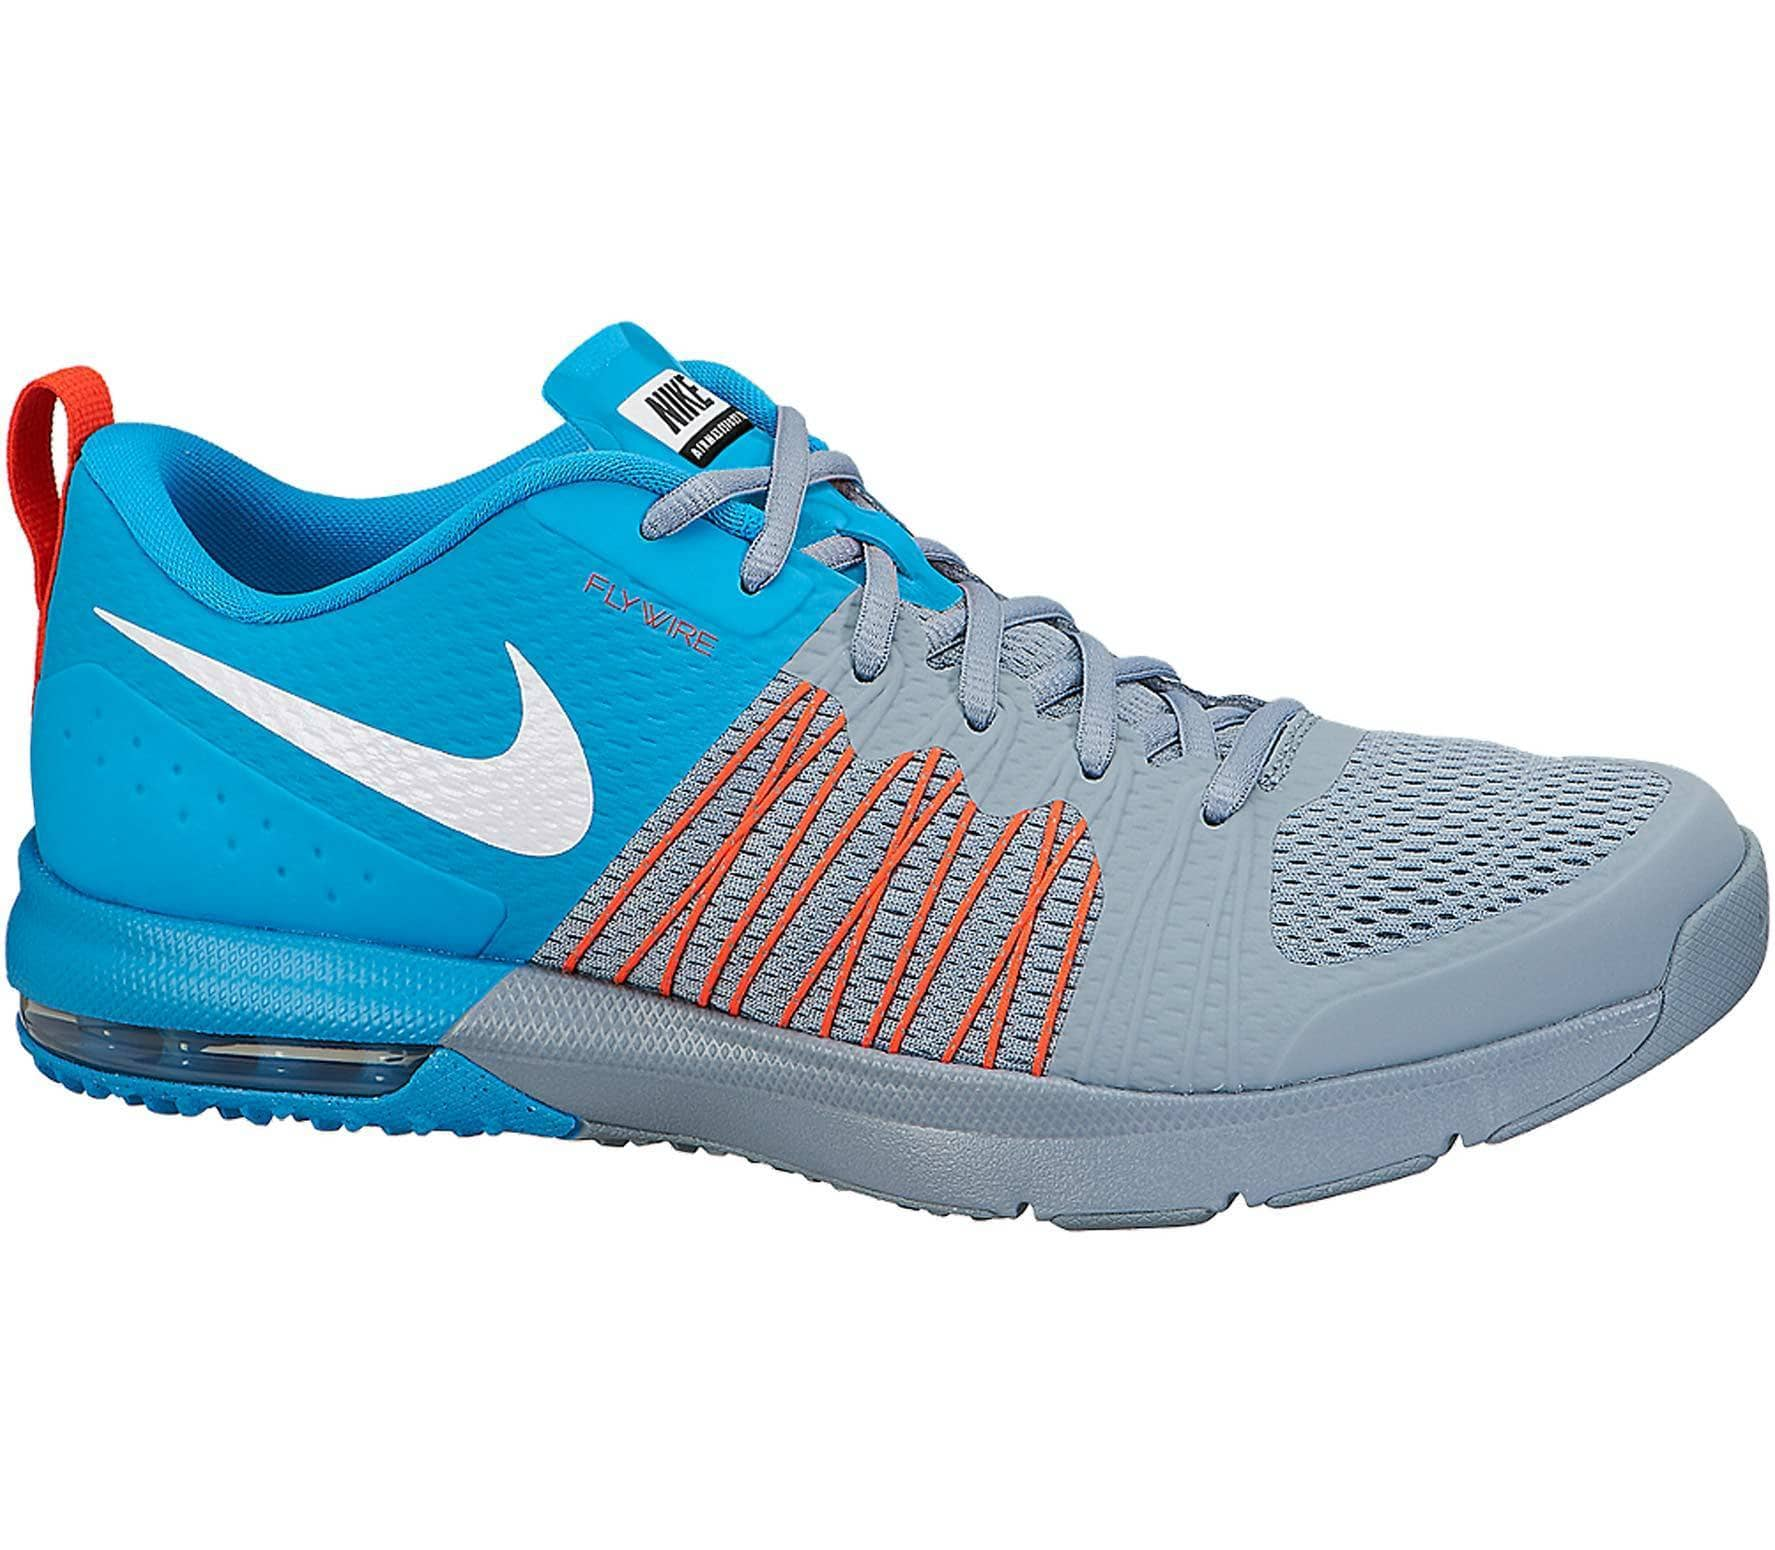 best sneakers 5a8c0 39941 Nike - Air Max Effort Trainer men s training shoes (blue grey)